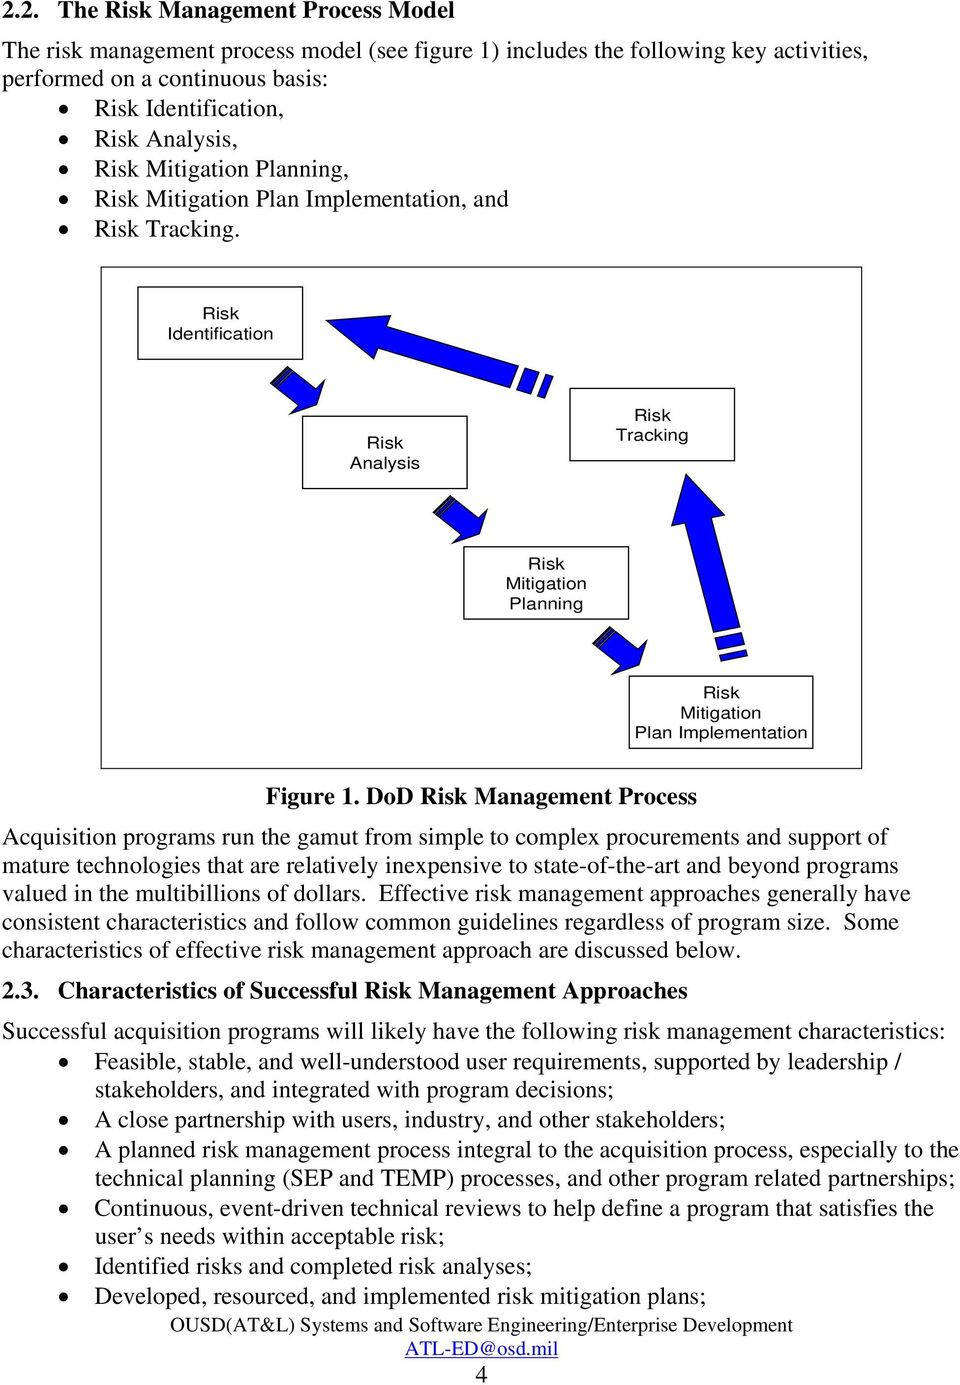 DoD Risk Management Process Acquisition programs run the gamut from simple to complex procurements and support of mature technologies that are relatively inexpensive to state-of-the-art and beyond